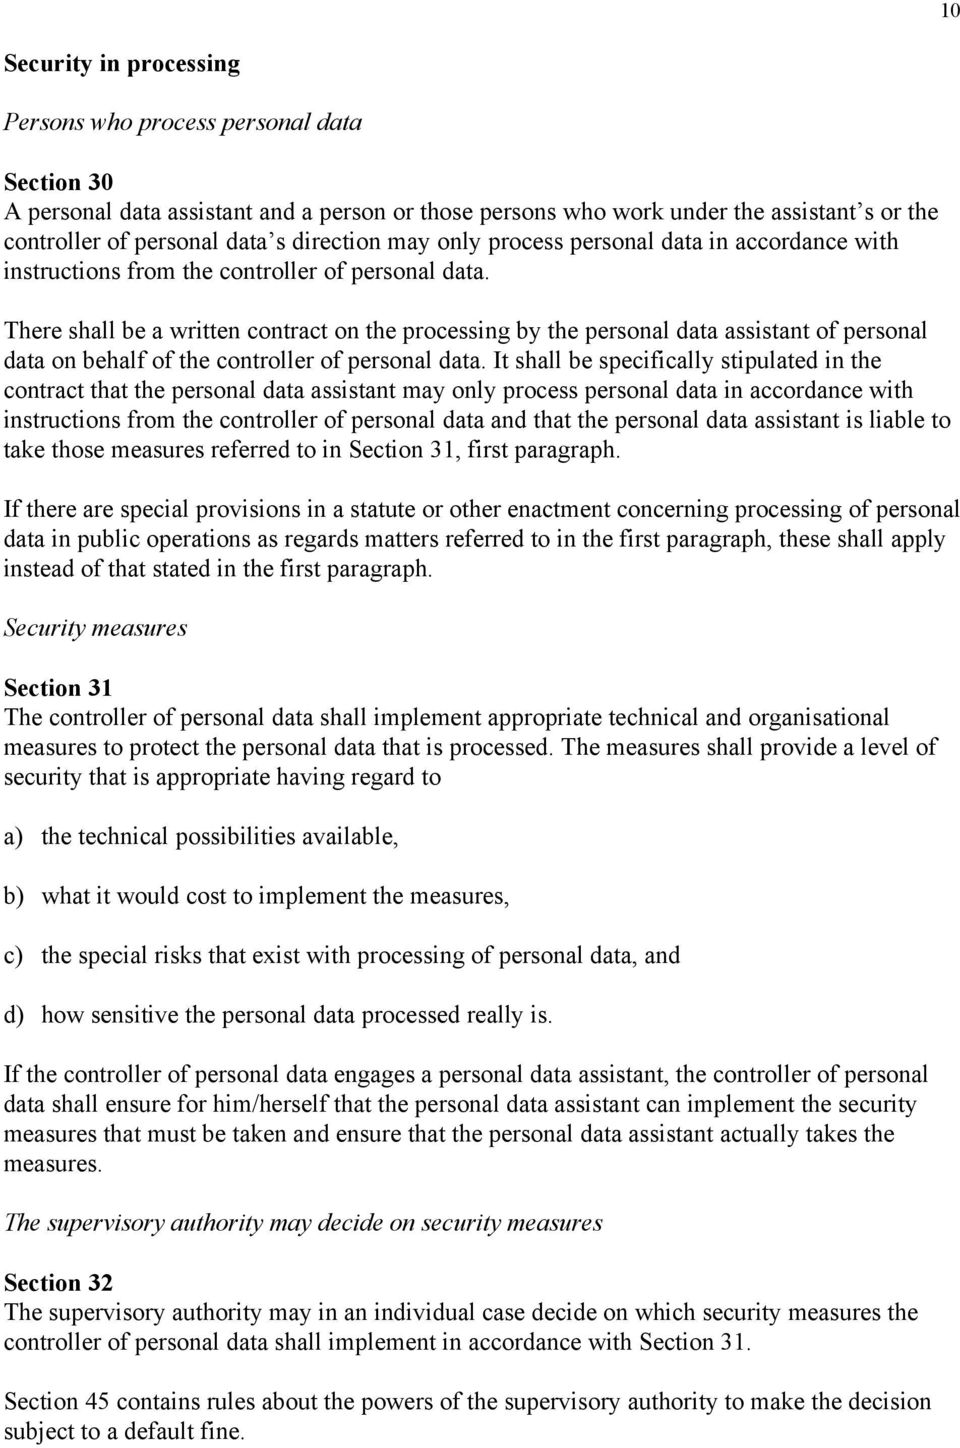 There shall be a written contract on the processing by the personal data assistant of personal data on behalf of the controller of personal data.